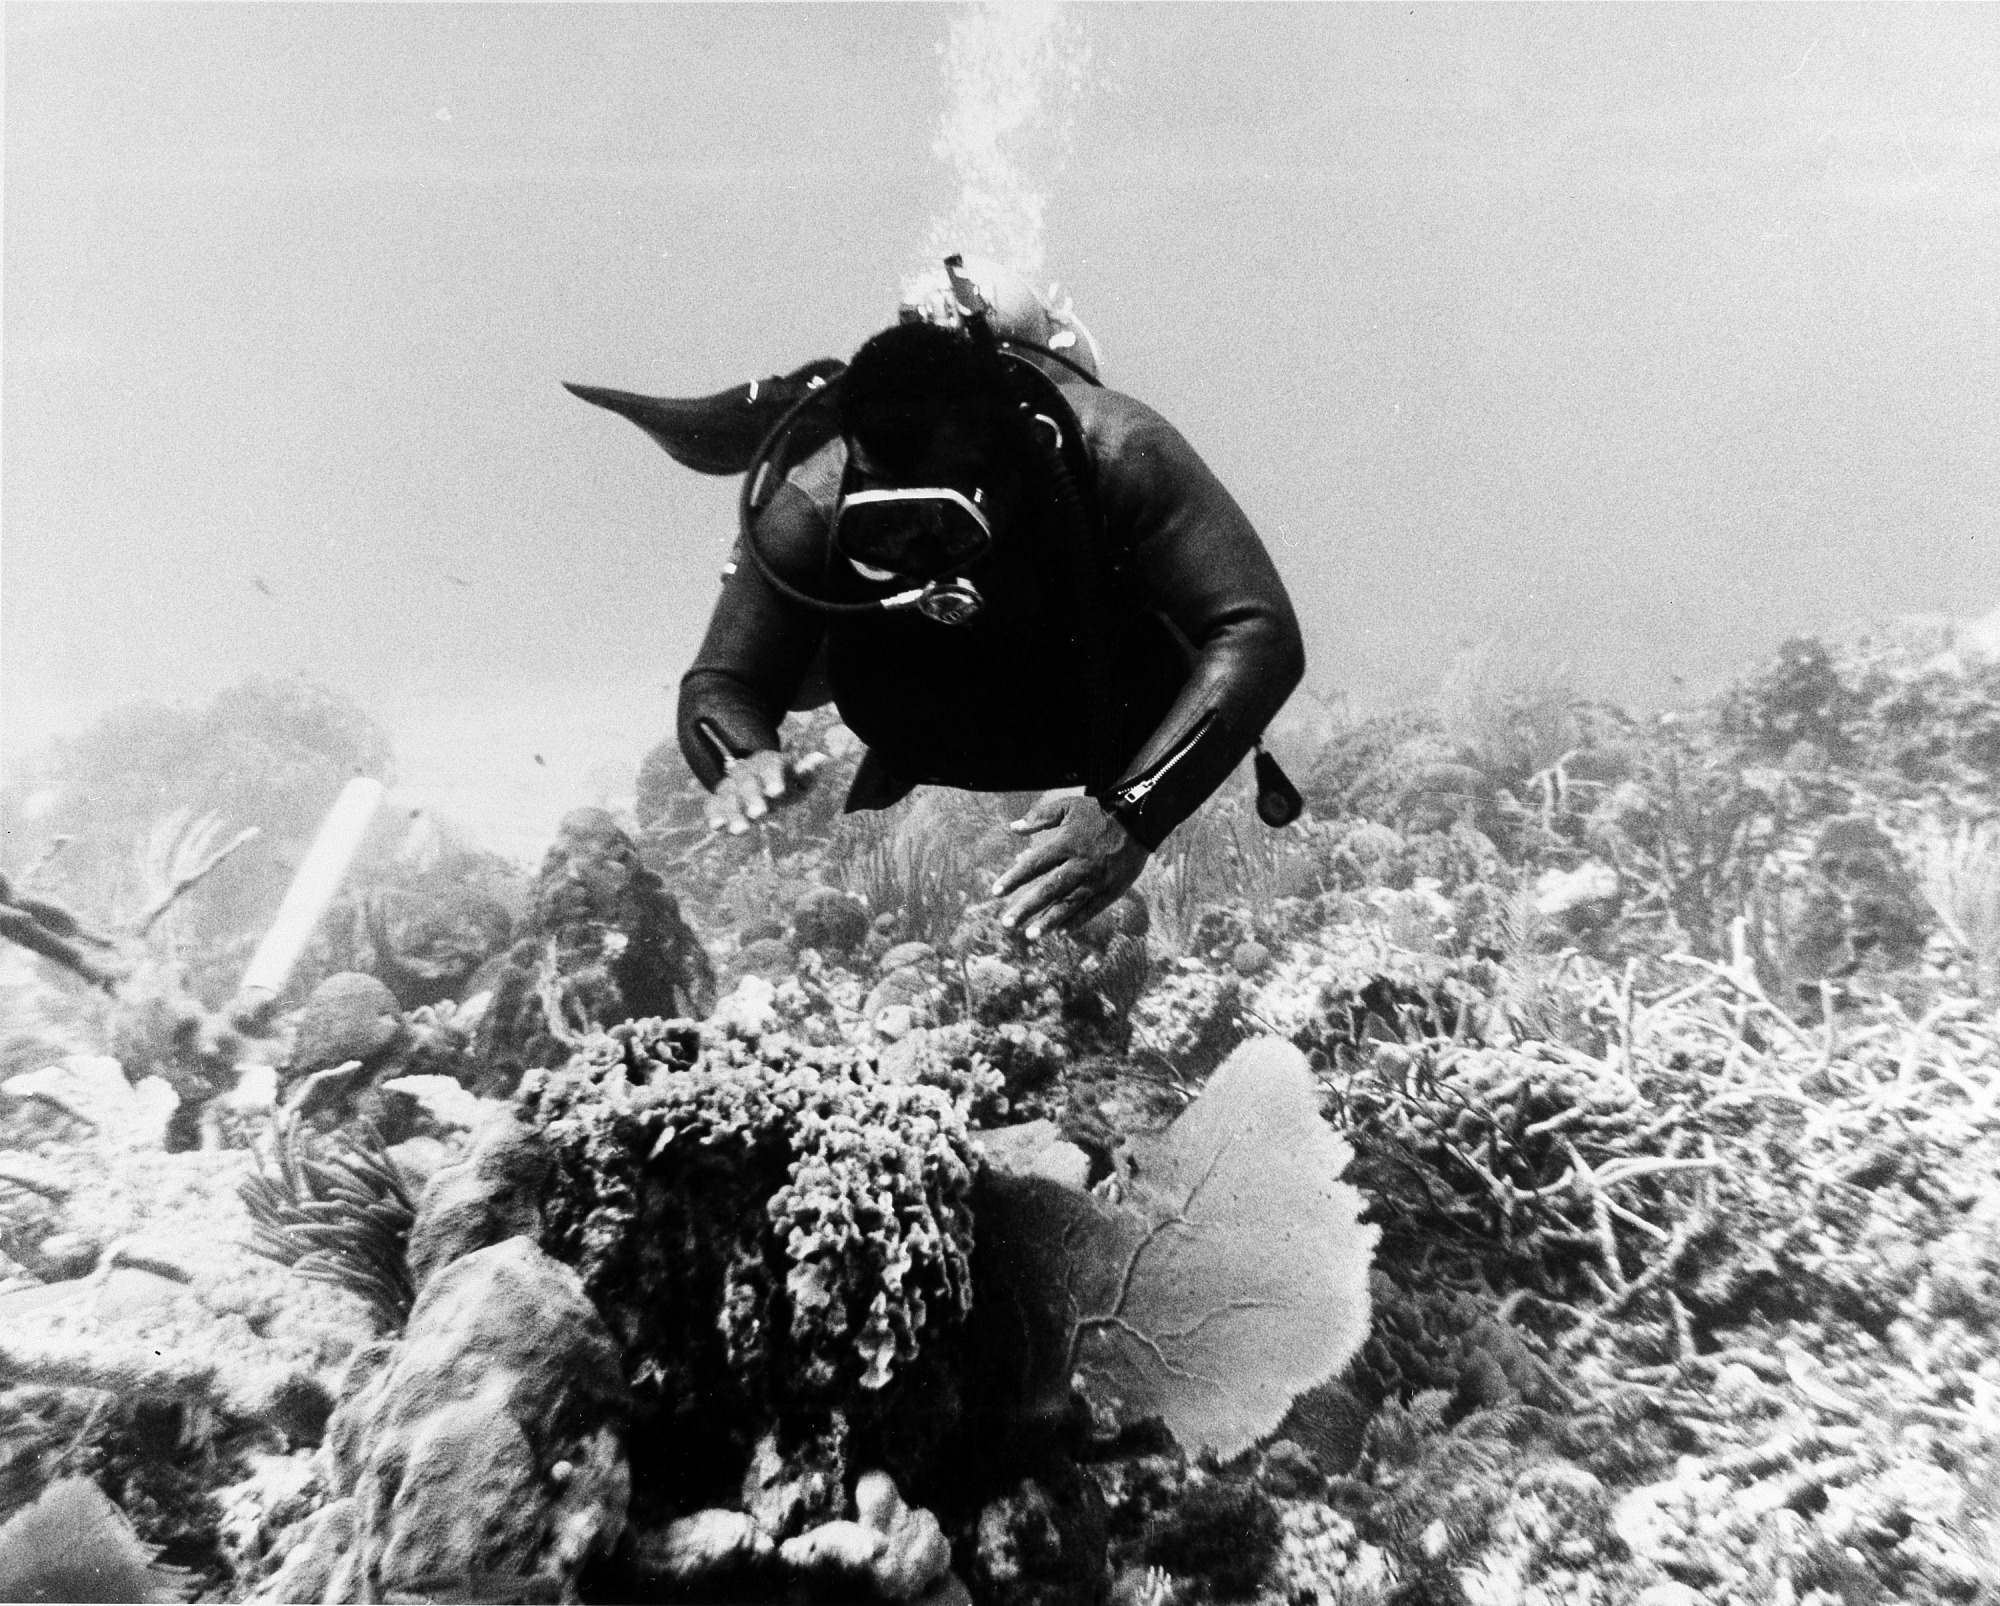 John Kinard Diving in the Caribbean